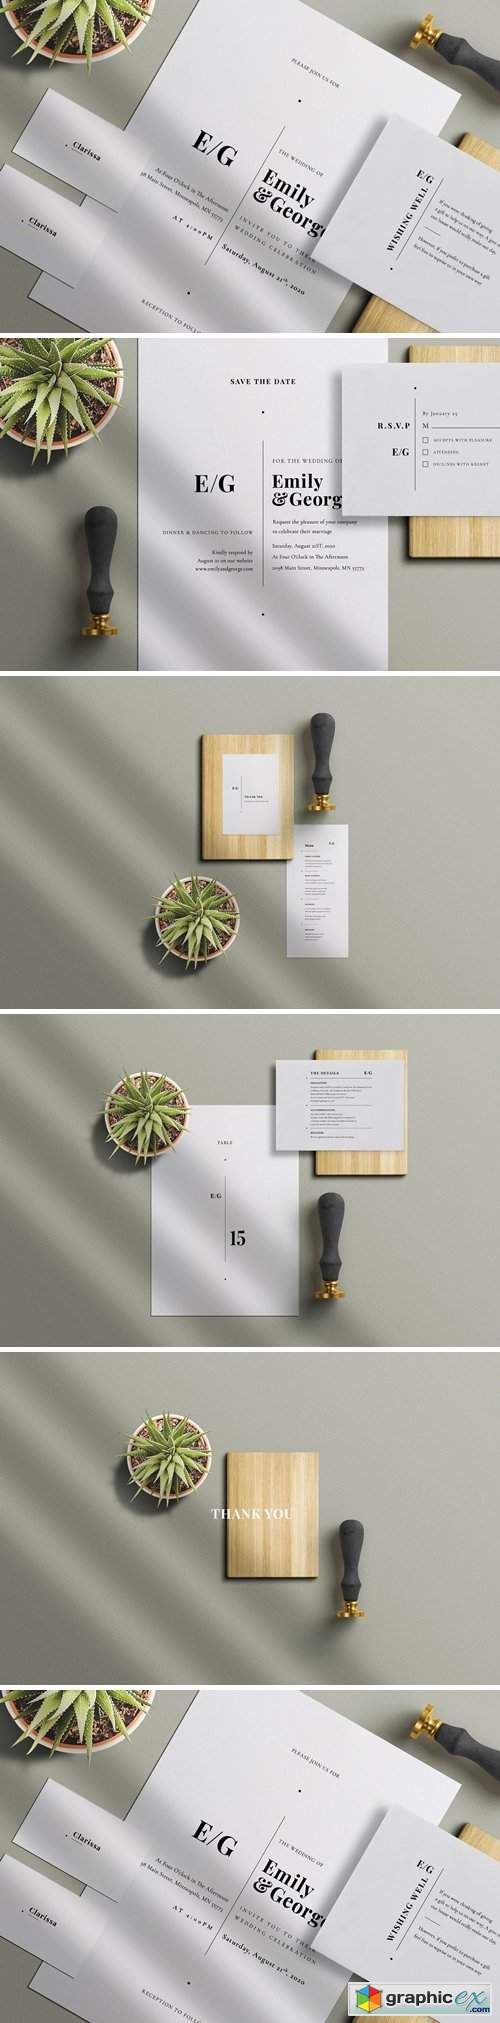 Minimal Wedding Invitation Set 4486154